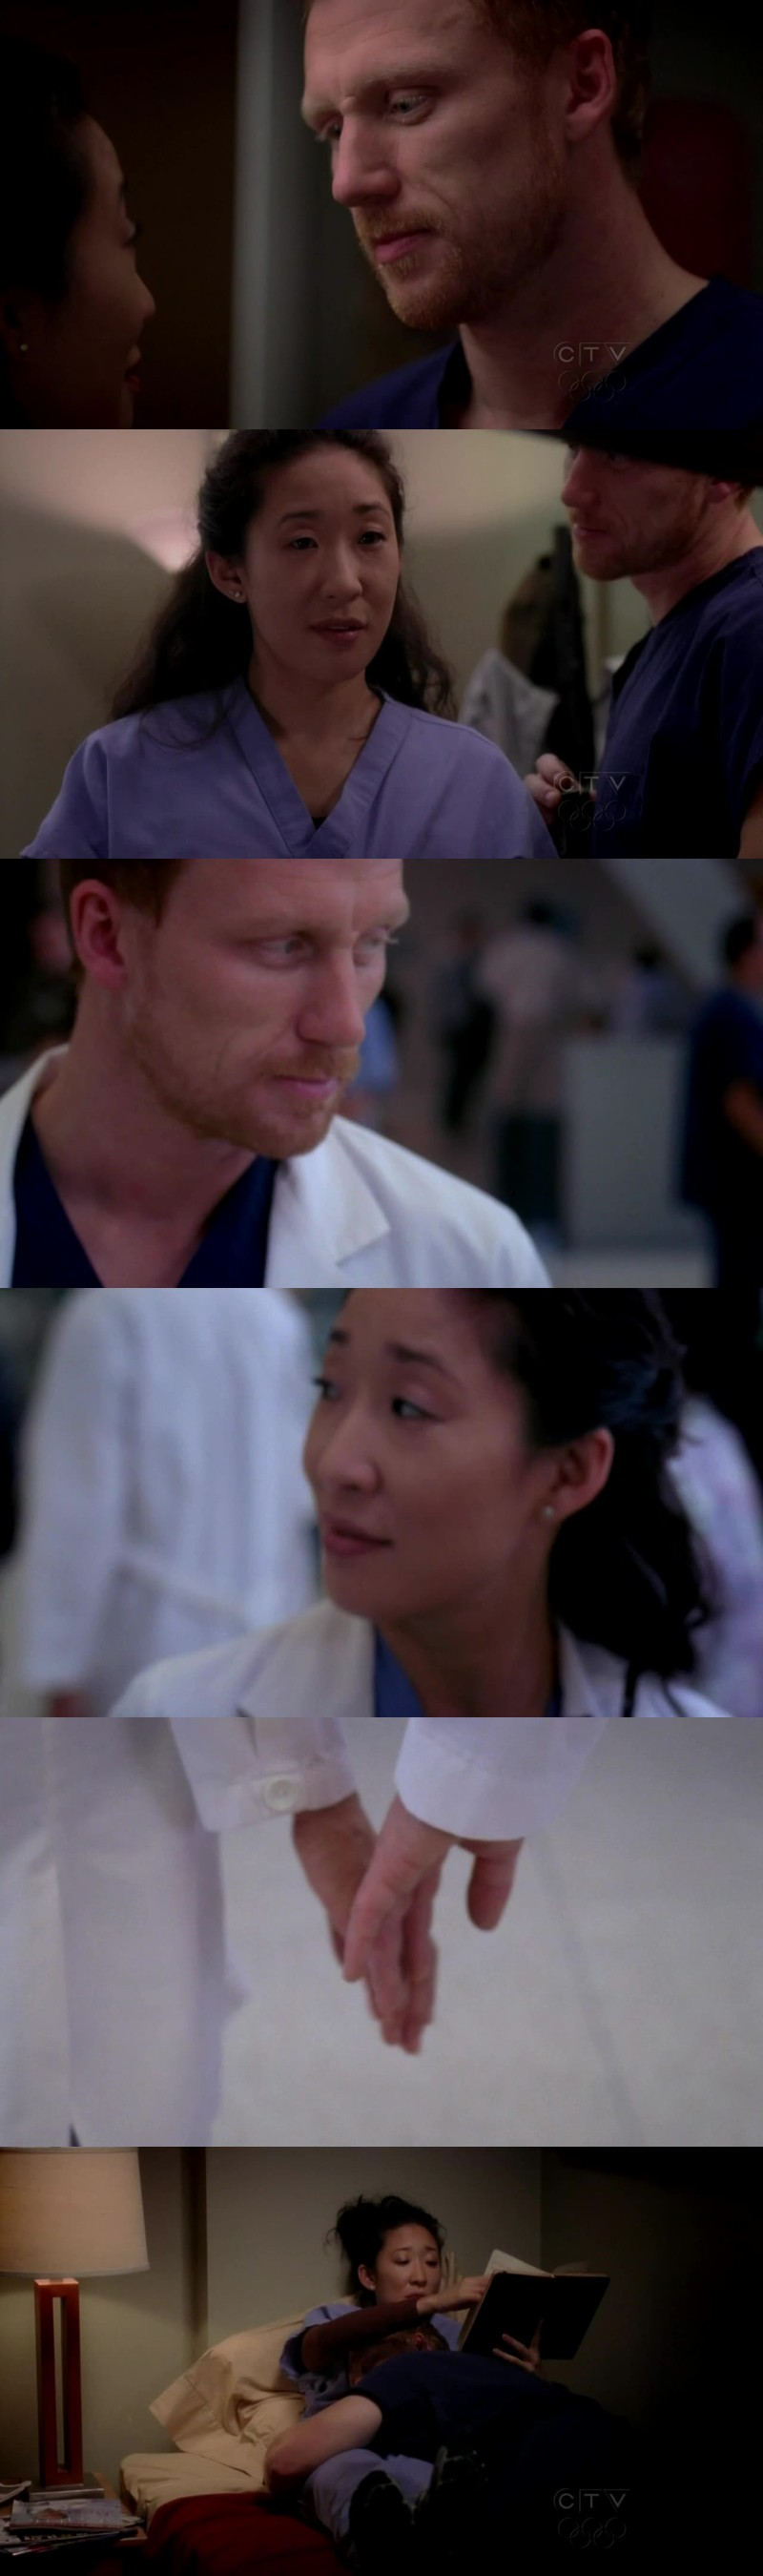 """You should wear your hair up more. Shows off the back of your neck. I like the back of your neck."" Crowen. 💖"